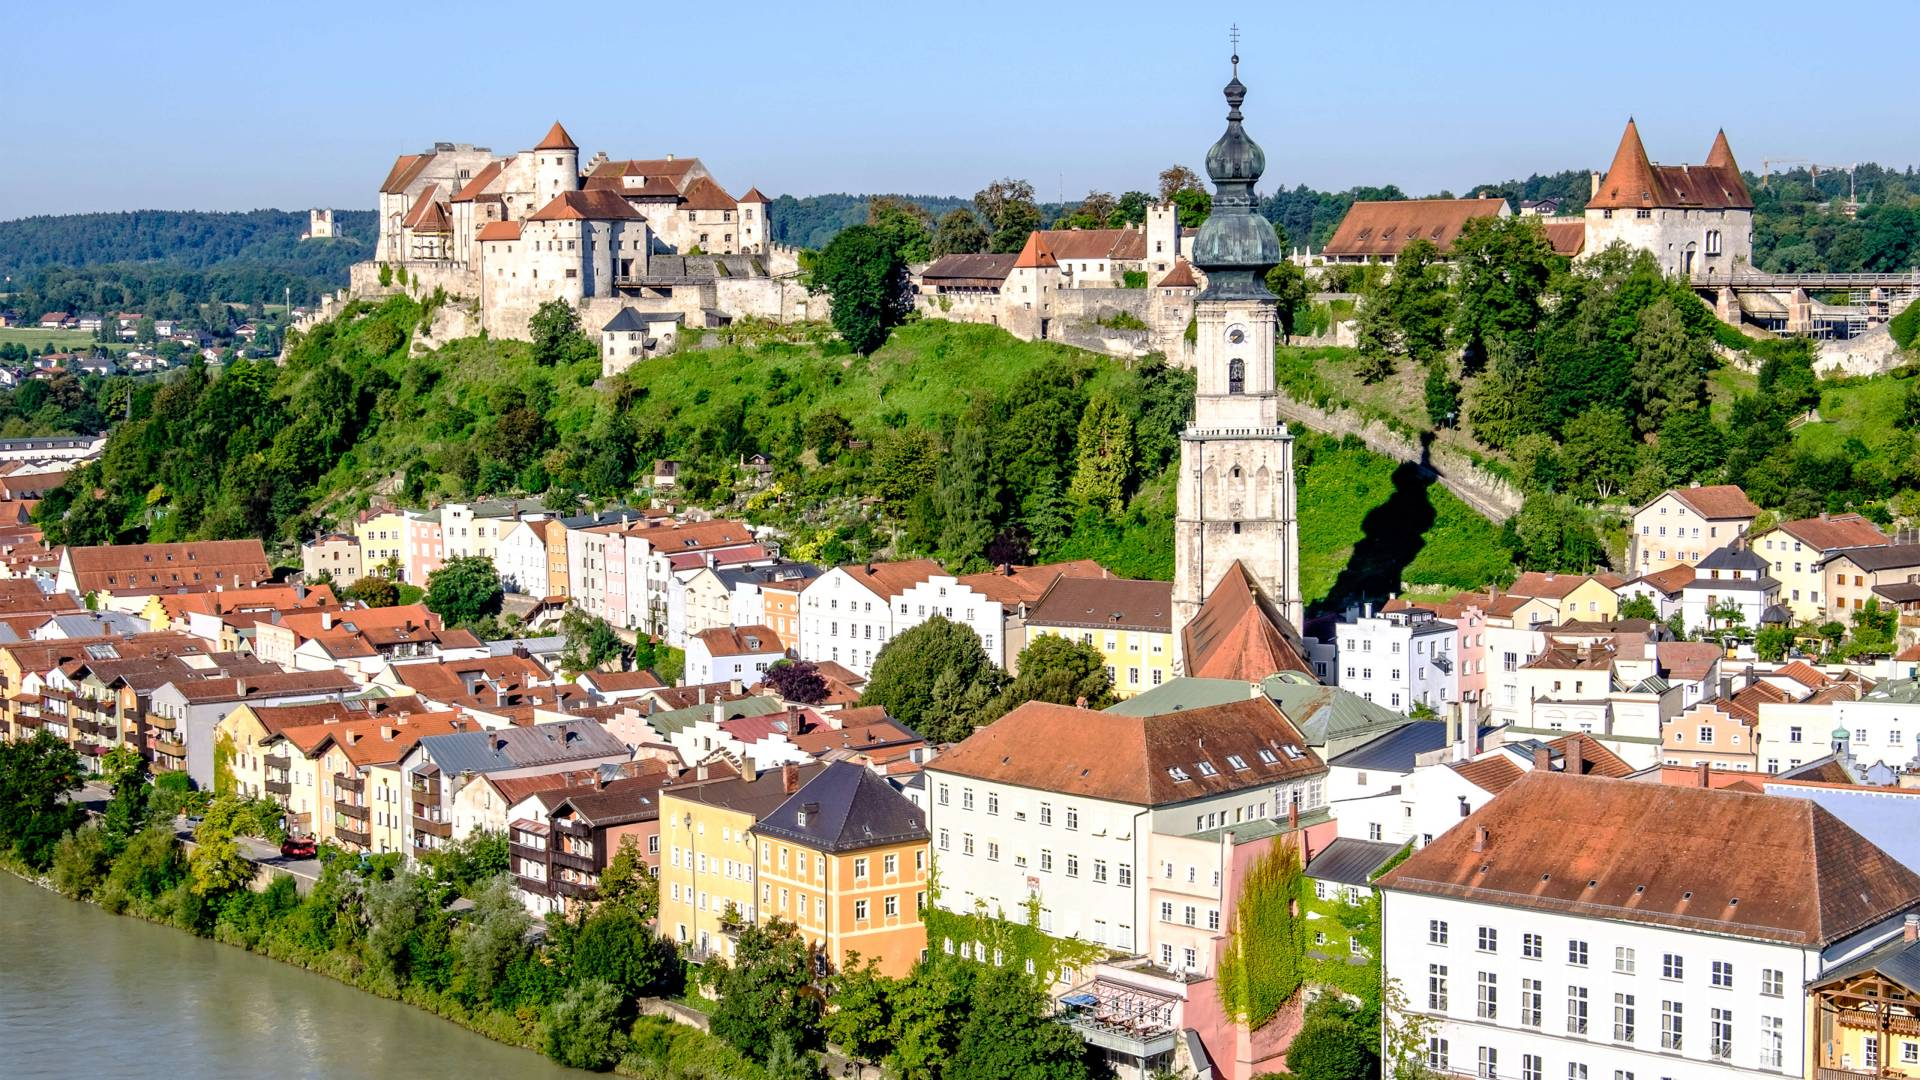 Aerial photo of historic center of Burghausen